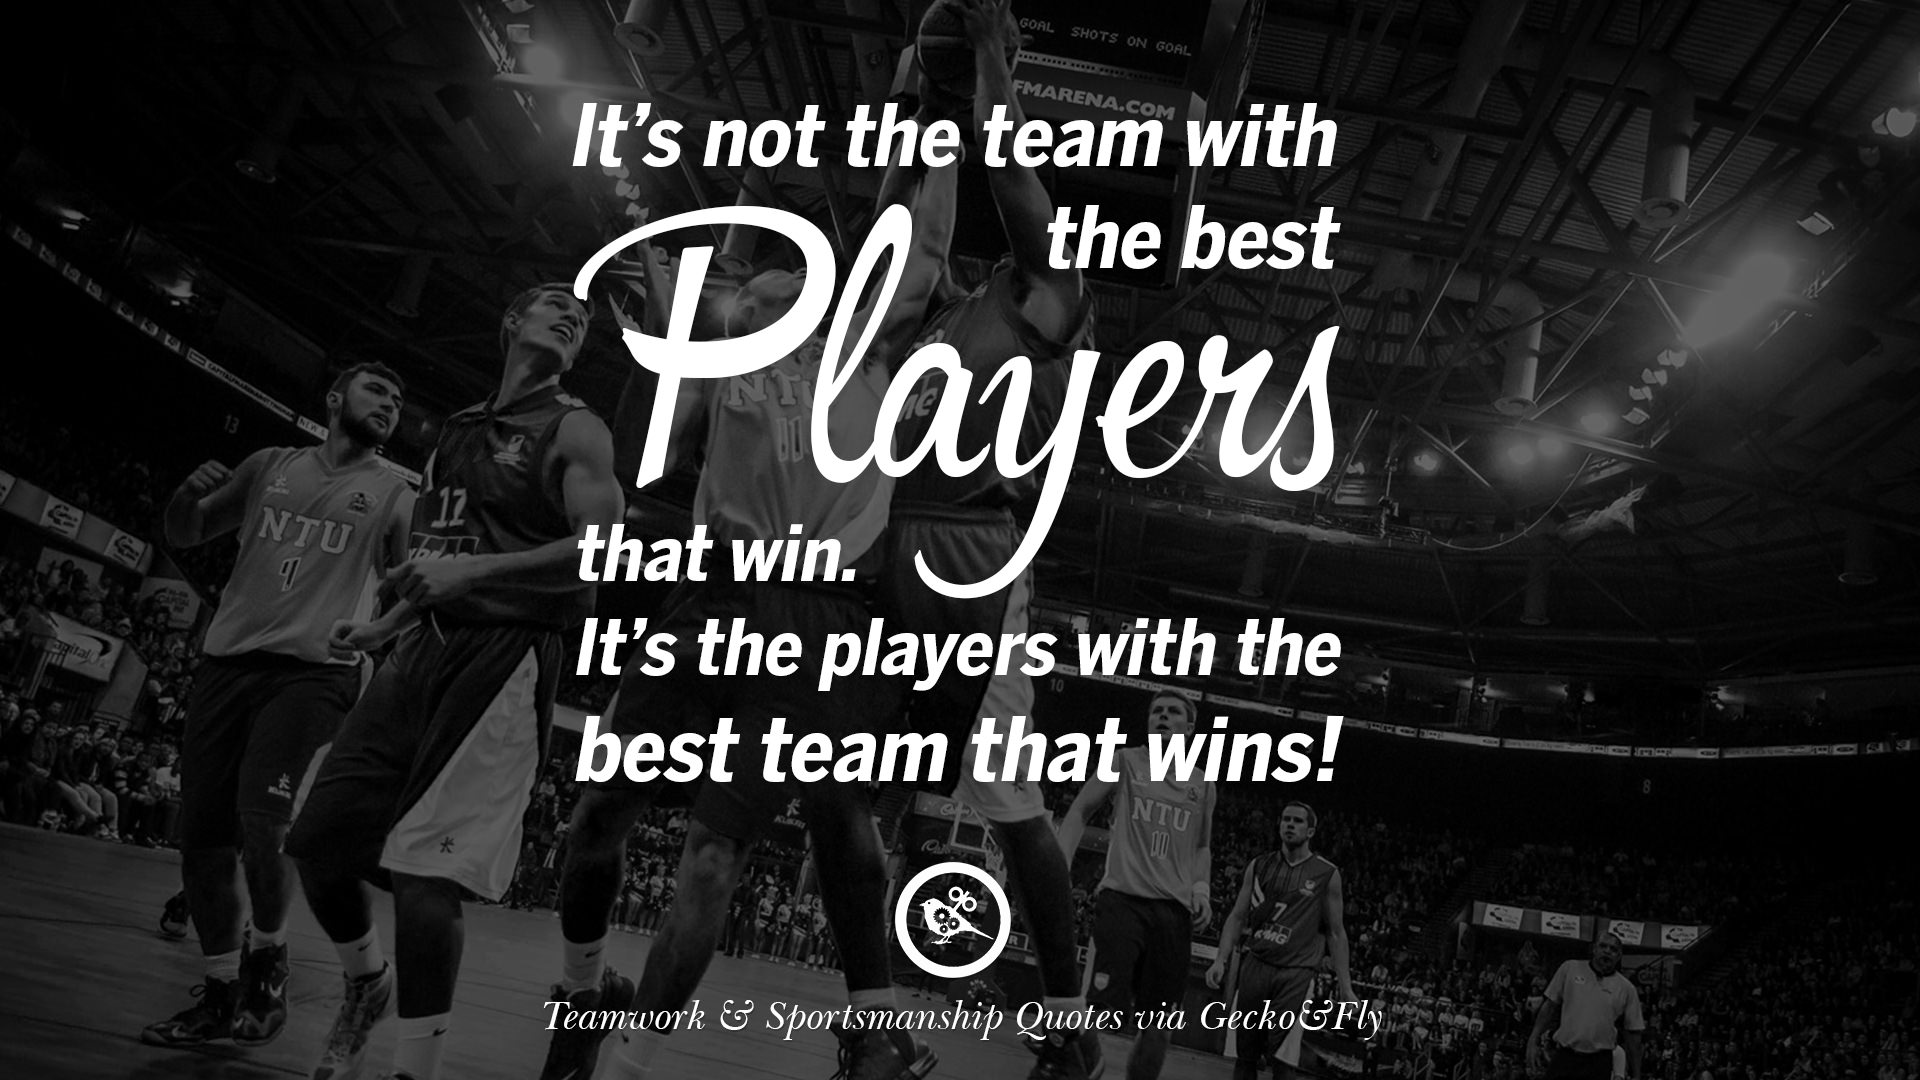 Best Football Quotes: 50 Inspirational Quotes About Teamwork And Sportsmanship